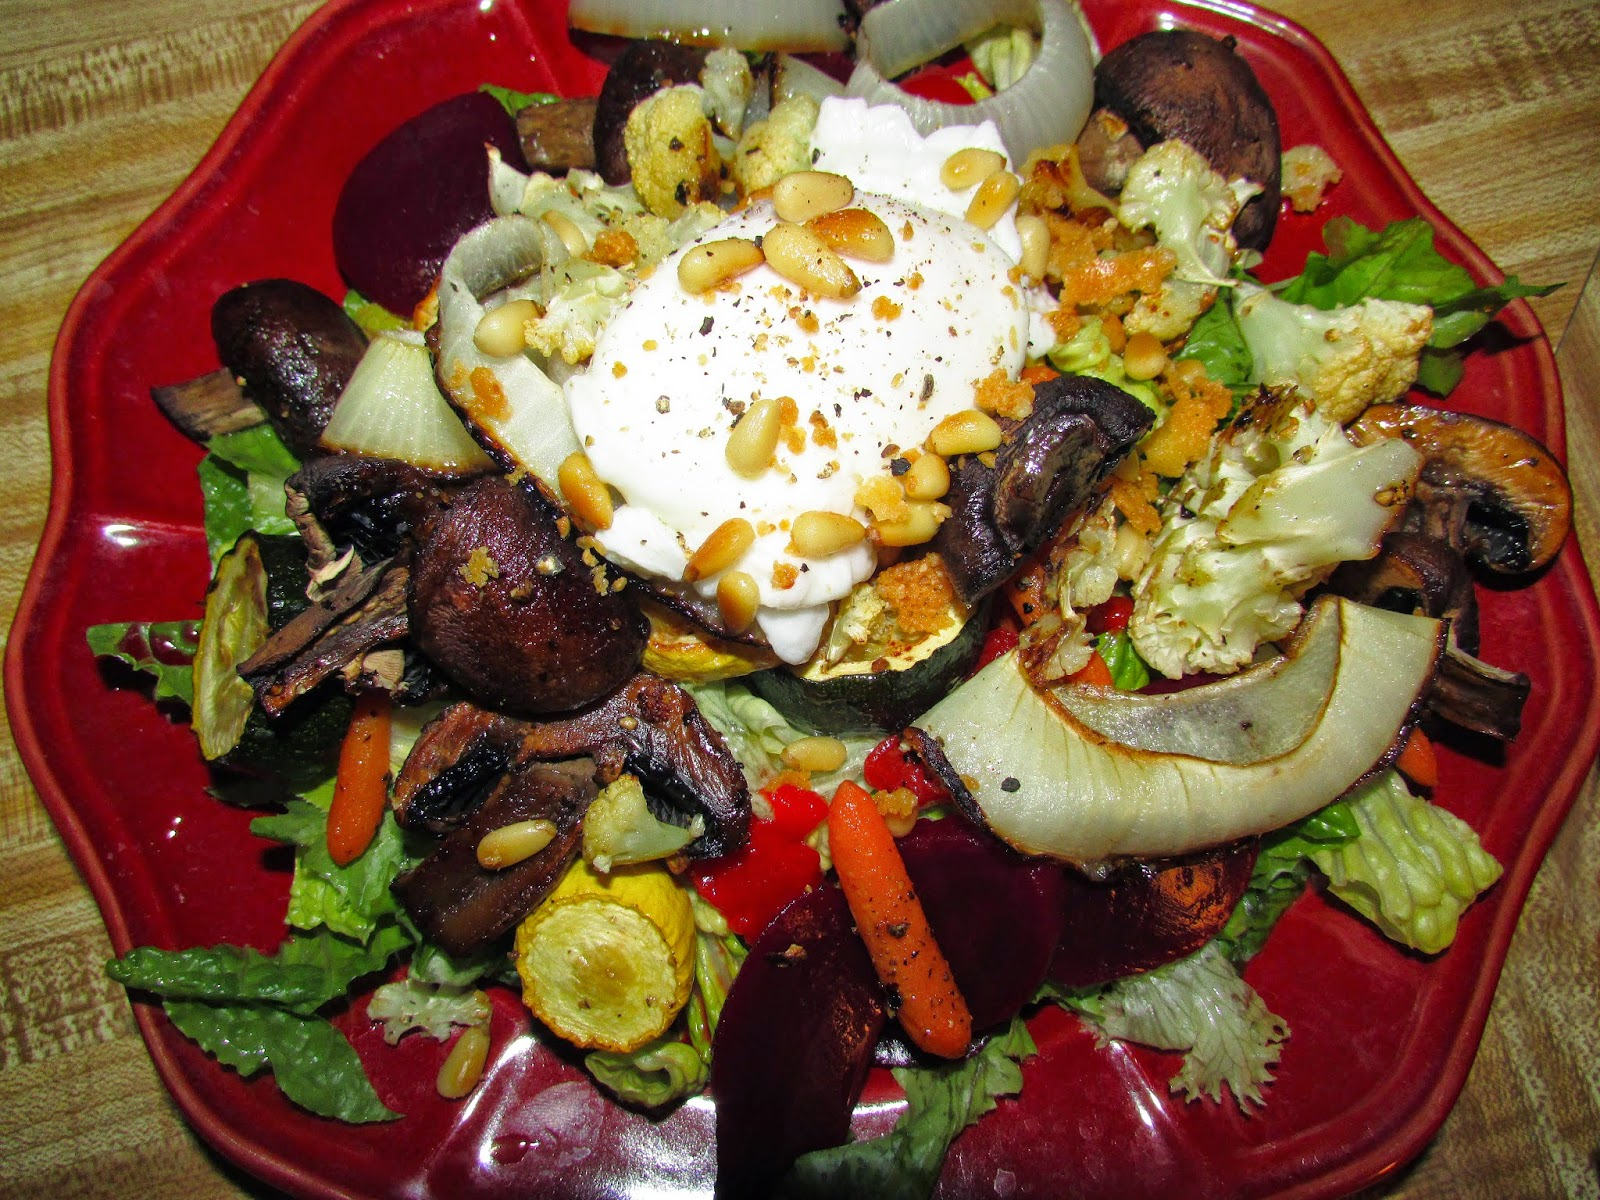 ... Roasted Vegetable Salad with Poached Egg and Parmesan Pine Nuts